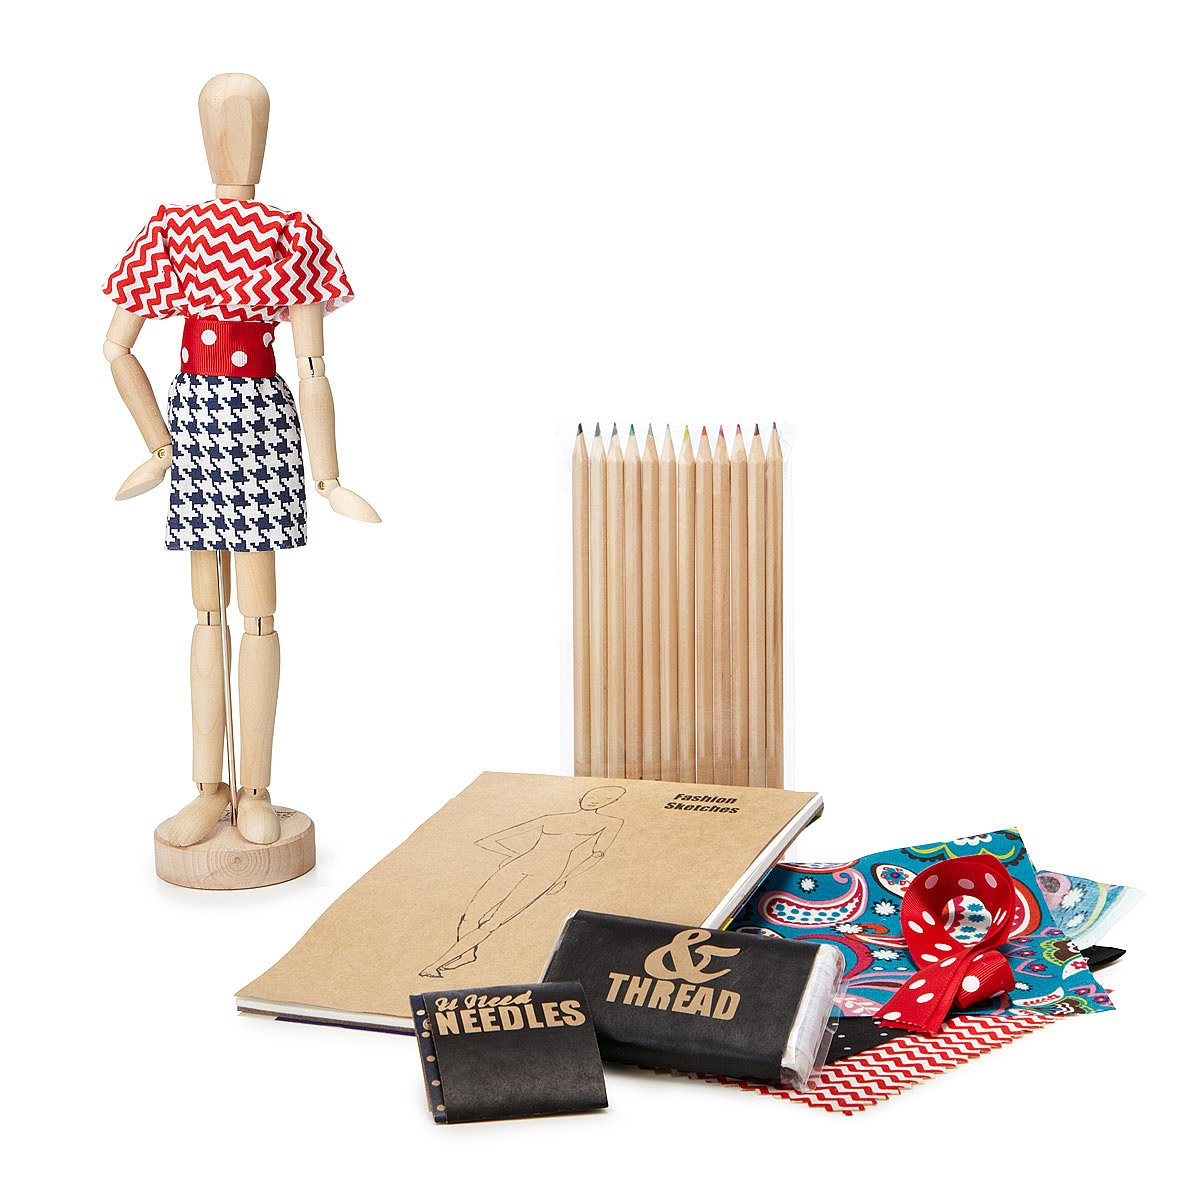 Klutz fashion design kit 13